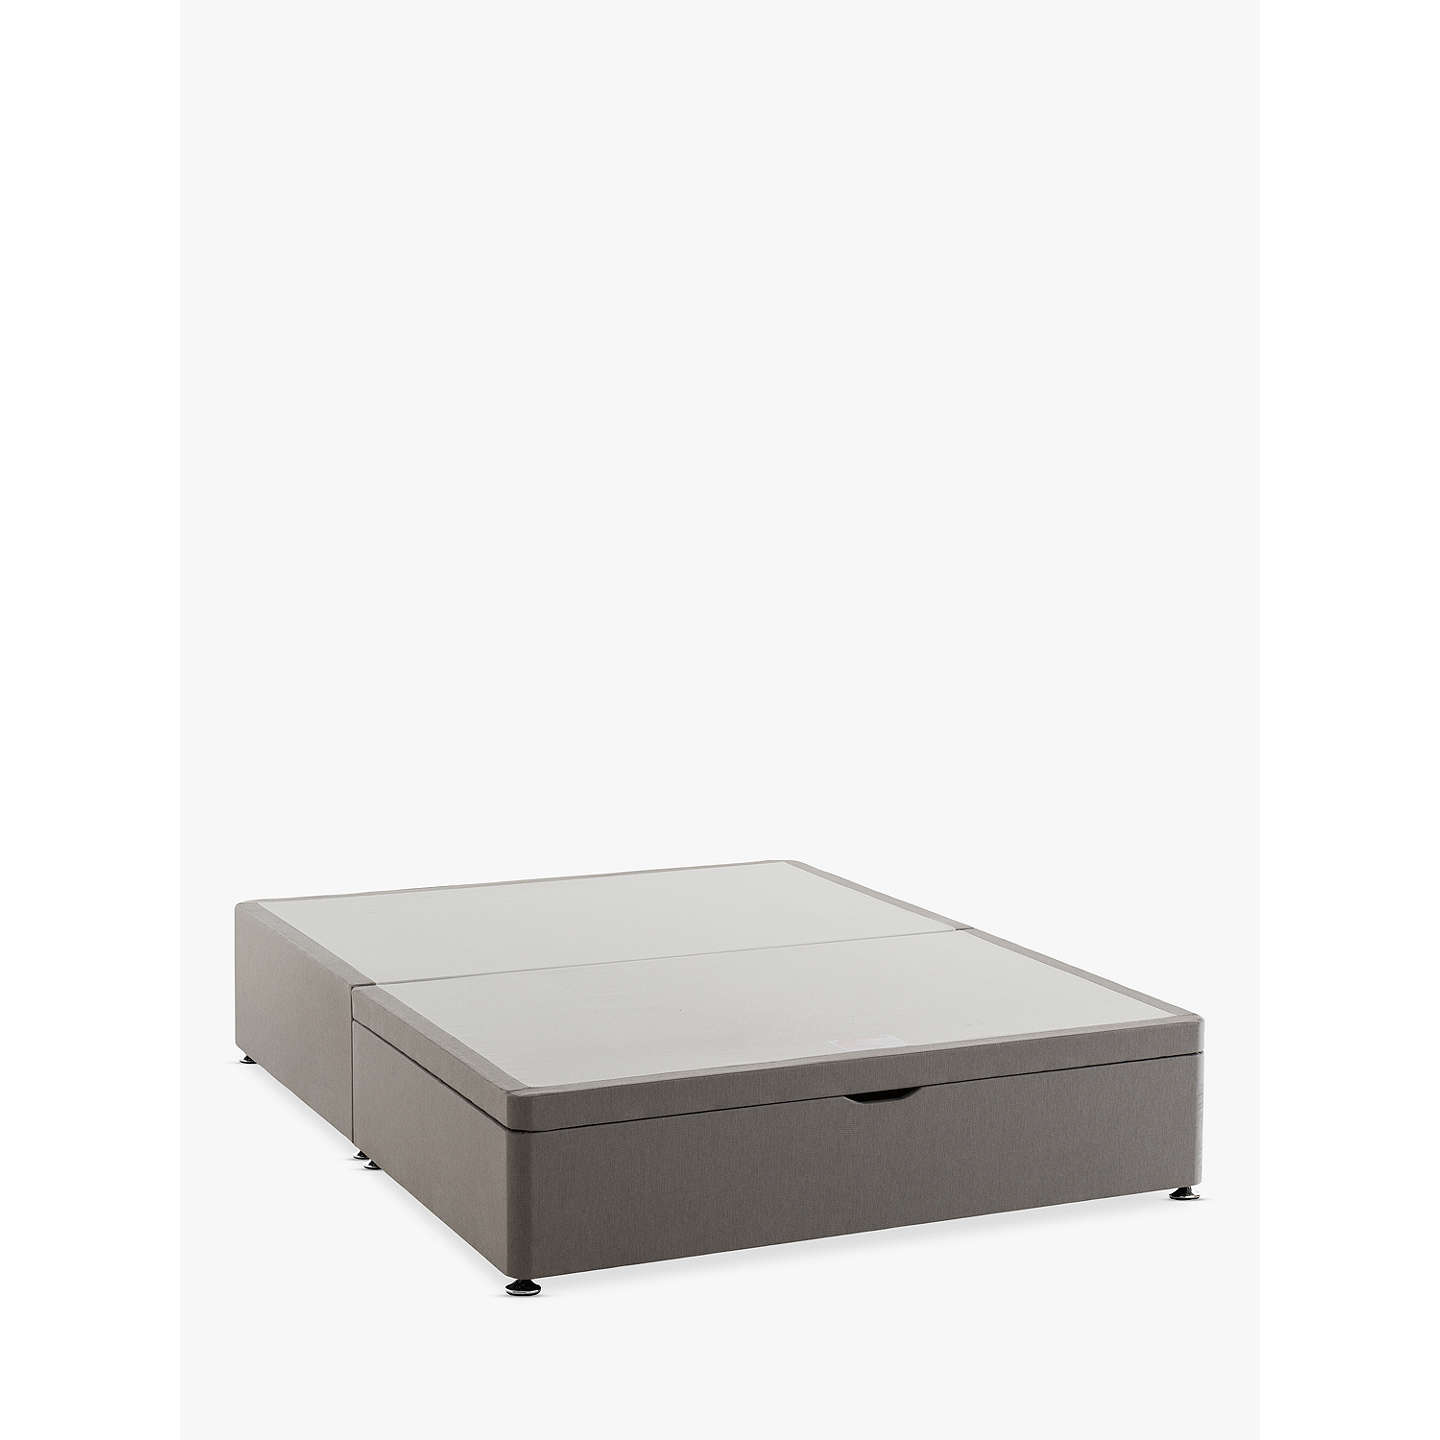 Silentnight End Divan Ottoman Storage Bed King Size At